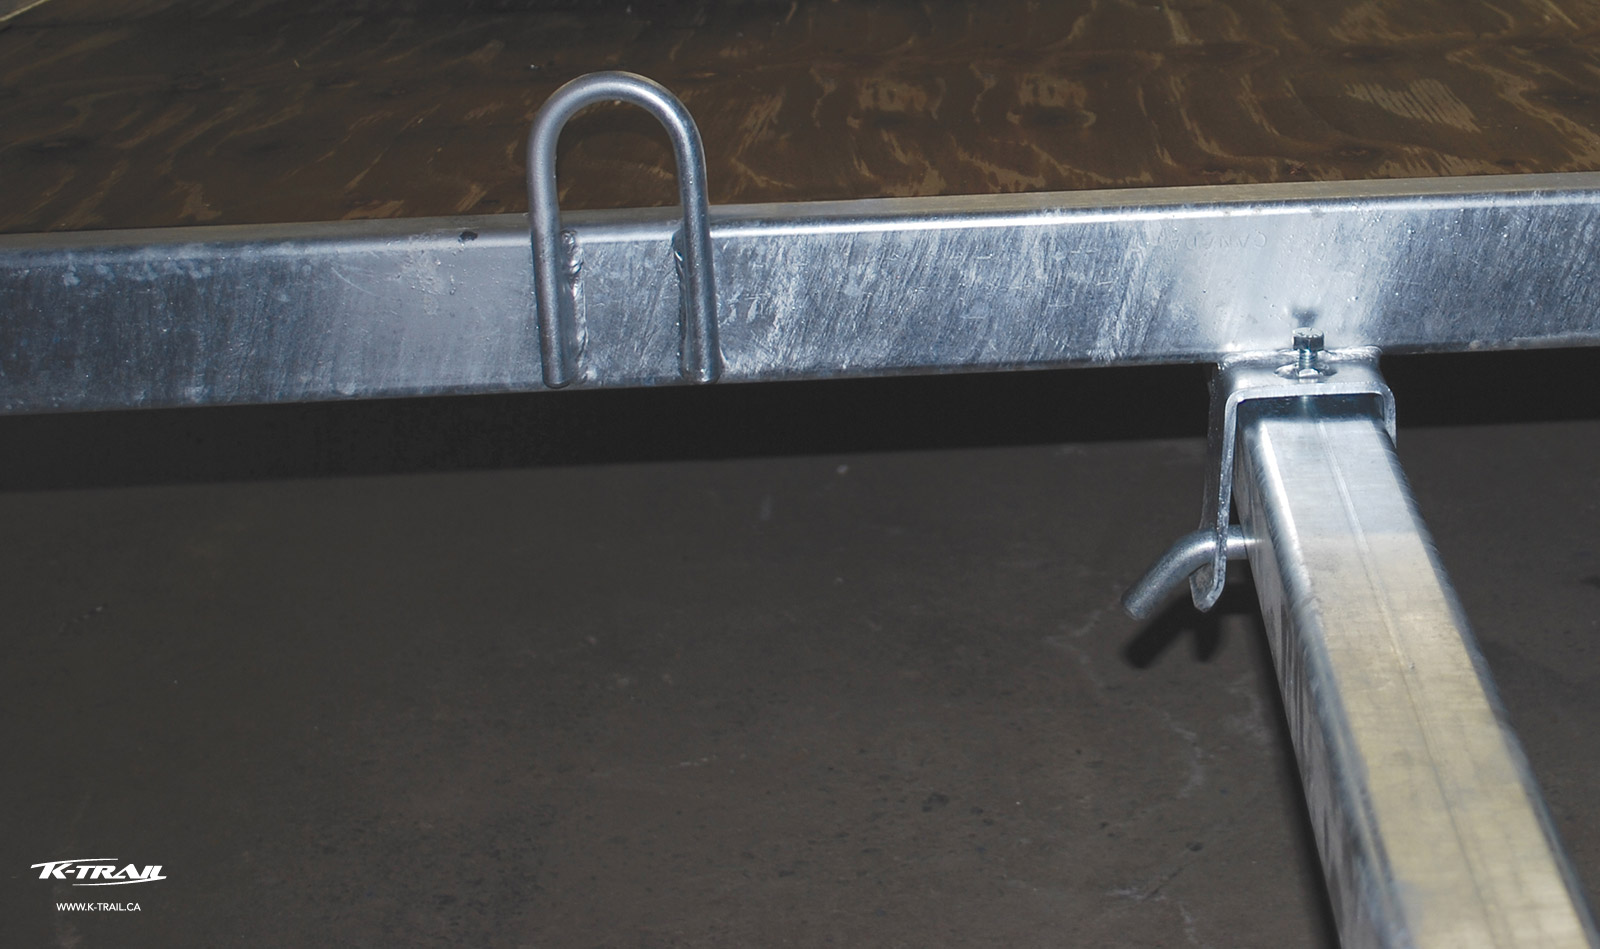 6 Sturdy anchors (2 on each side and 2 in the front)